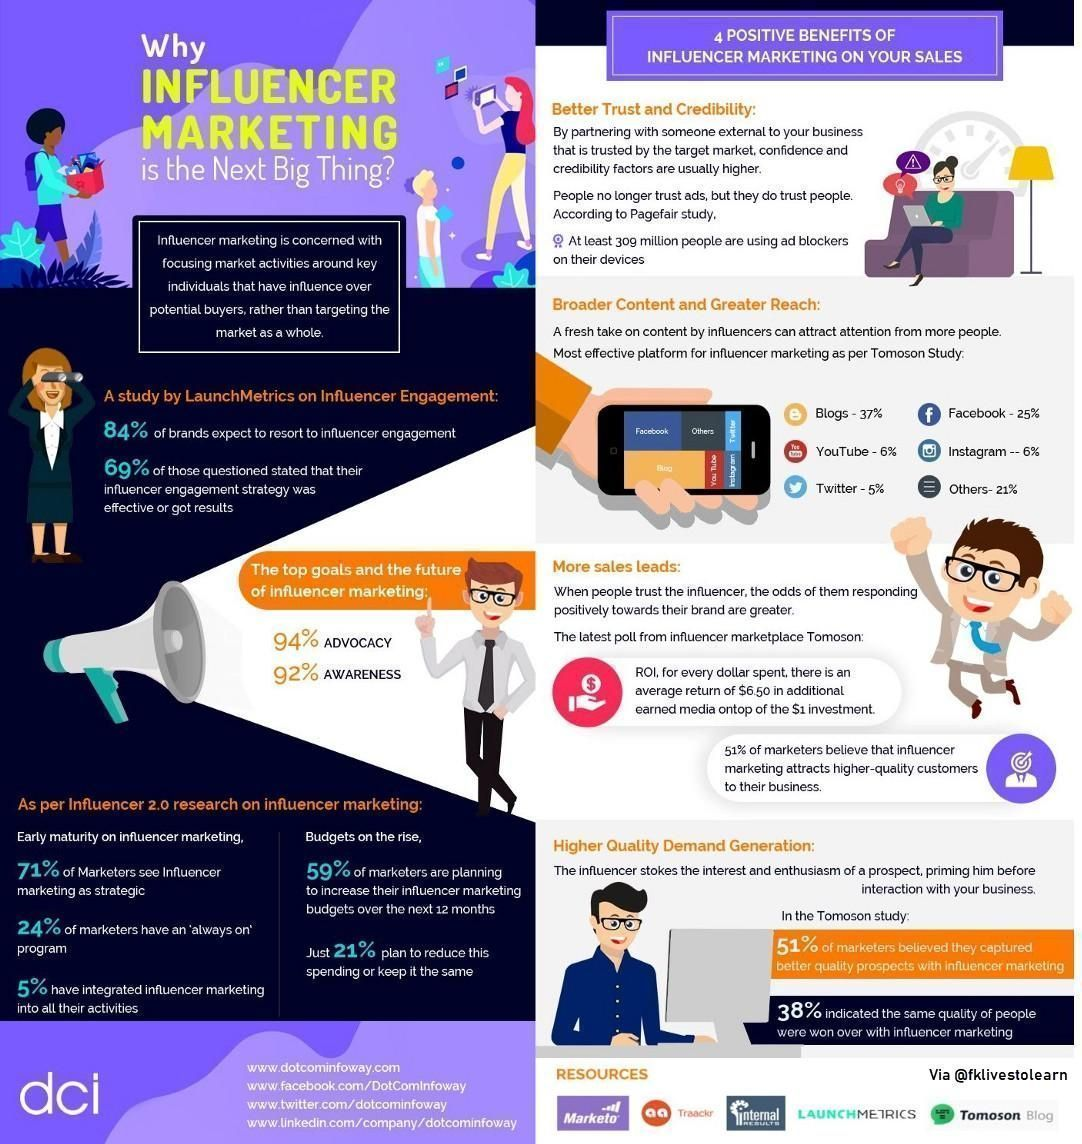 Why #InfluencerMarketing is the next Big Thing: - Better trust & credibility - Broader #content & greater reach - More sales leads - Higher quality demand generation  #SMM #LeadGen #LeadGeneration #DigitalMarketing #SocialMediaMarketing  Via @dotcominfoway @fklivestolearn https://t.co/gkE7ZCMgW4